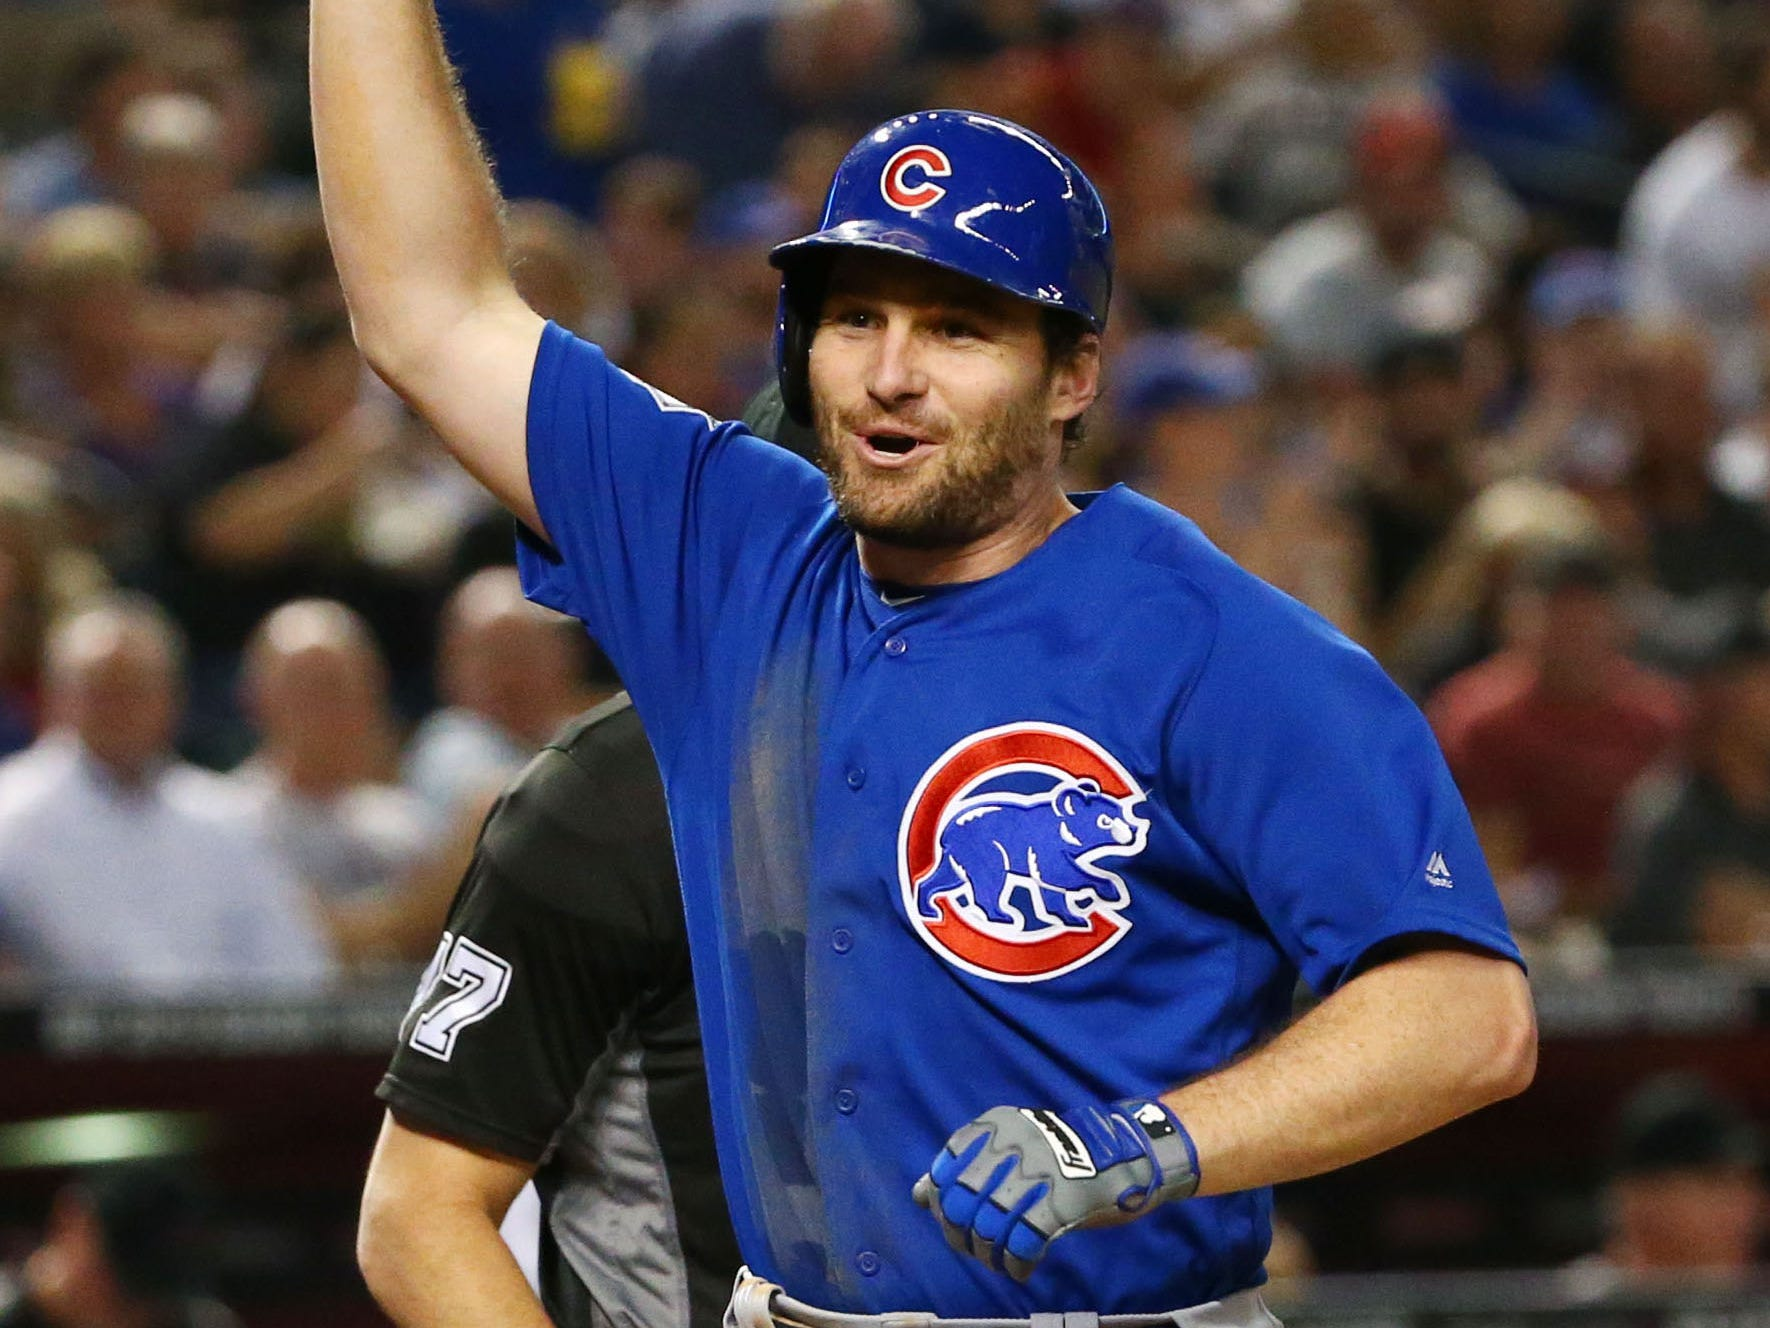 Chicago Cubs 	Daniel Murphy reacts after hitting a 2-run home run against the Arizona Diamondbacks in the second inning on Sep. 18, 2018, at Chase Field in Phoenix, Ariz.